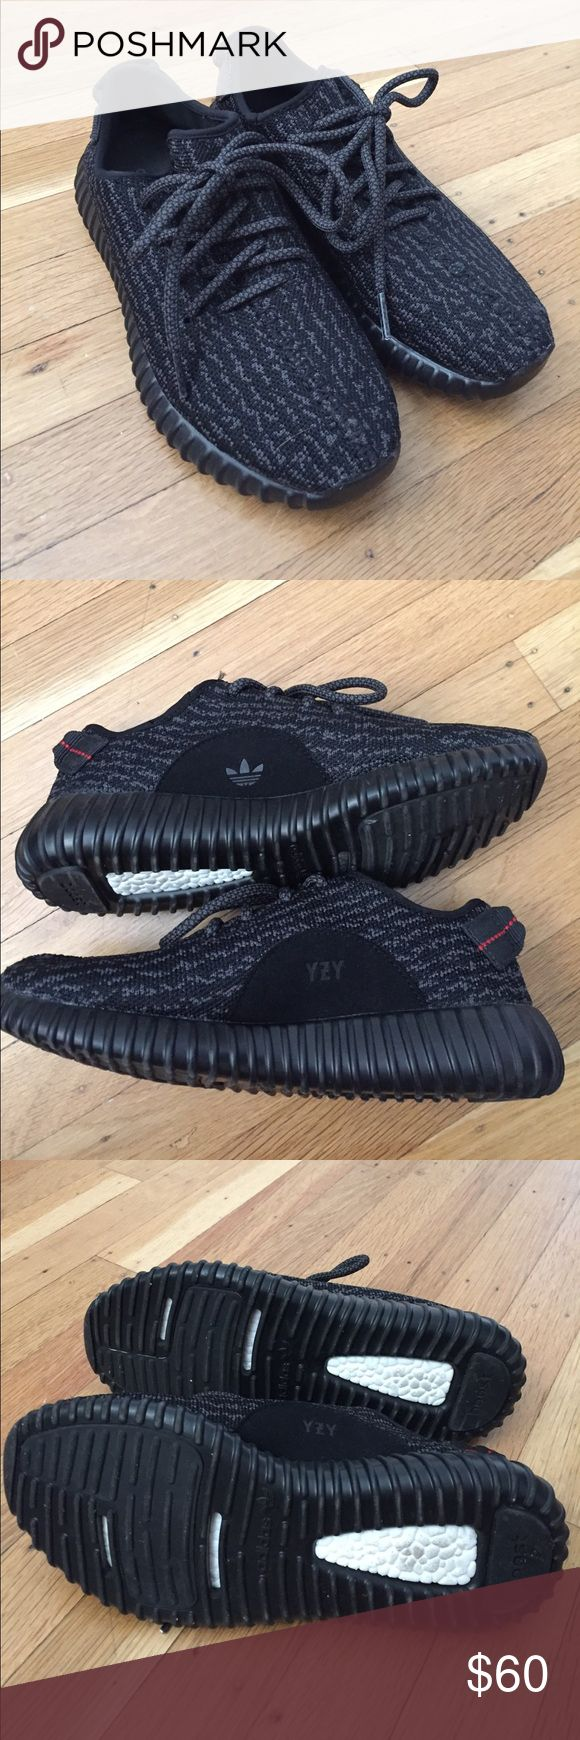 Yeezy boost 350 pirate black non authentic ( fake ) yeezy boost 350 pirate black. No box no receipt. Size 6 in men's 8 in women's. runs true to size. Yeezy Shoes Sneakers